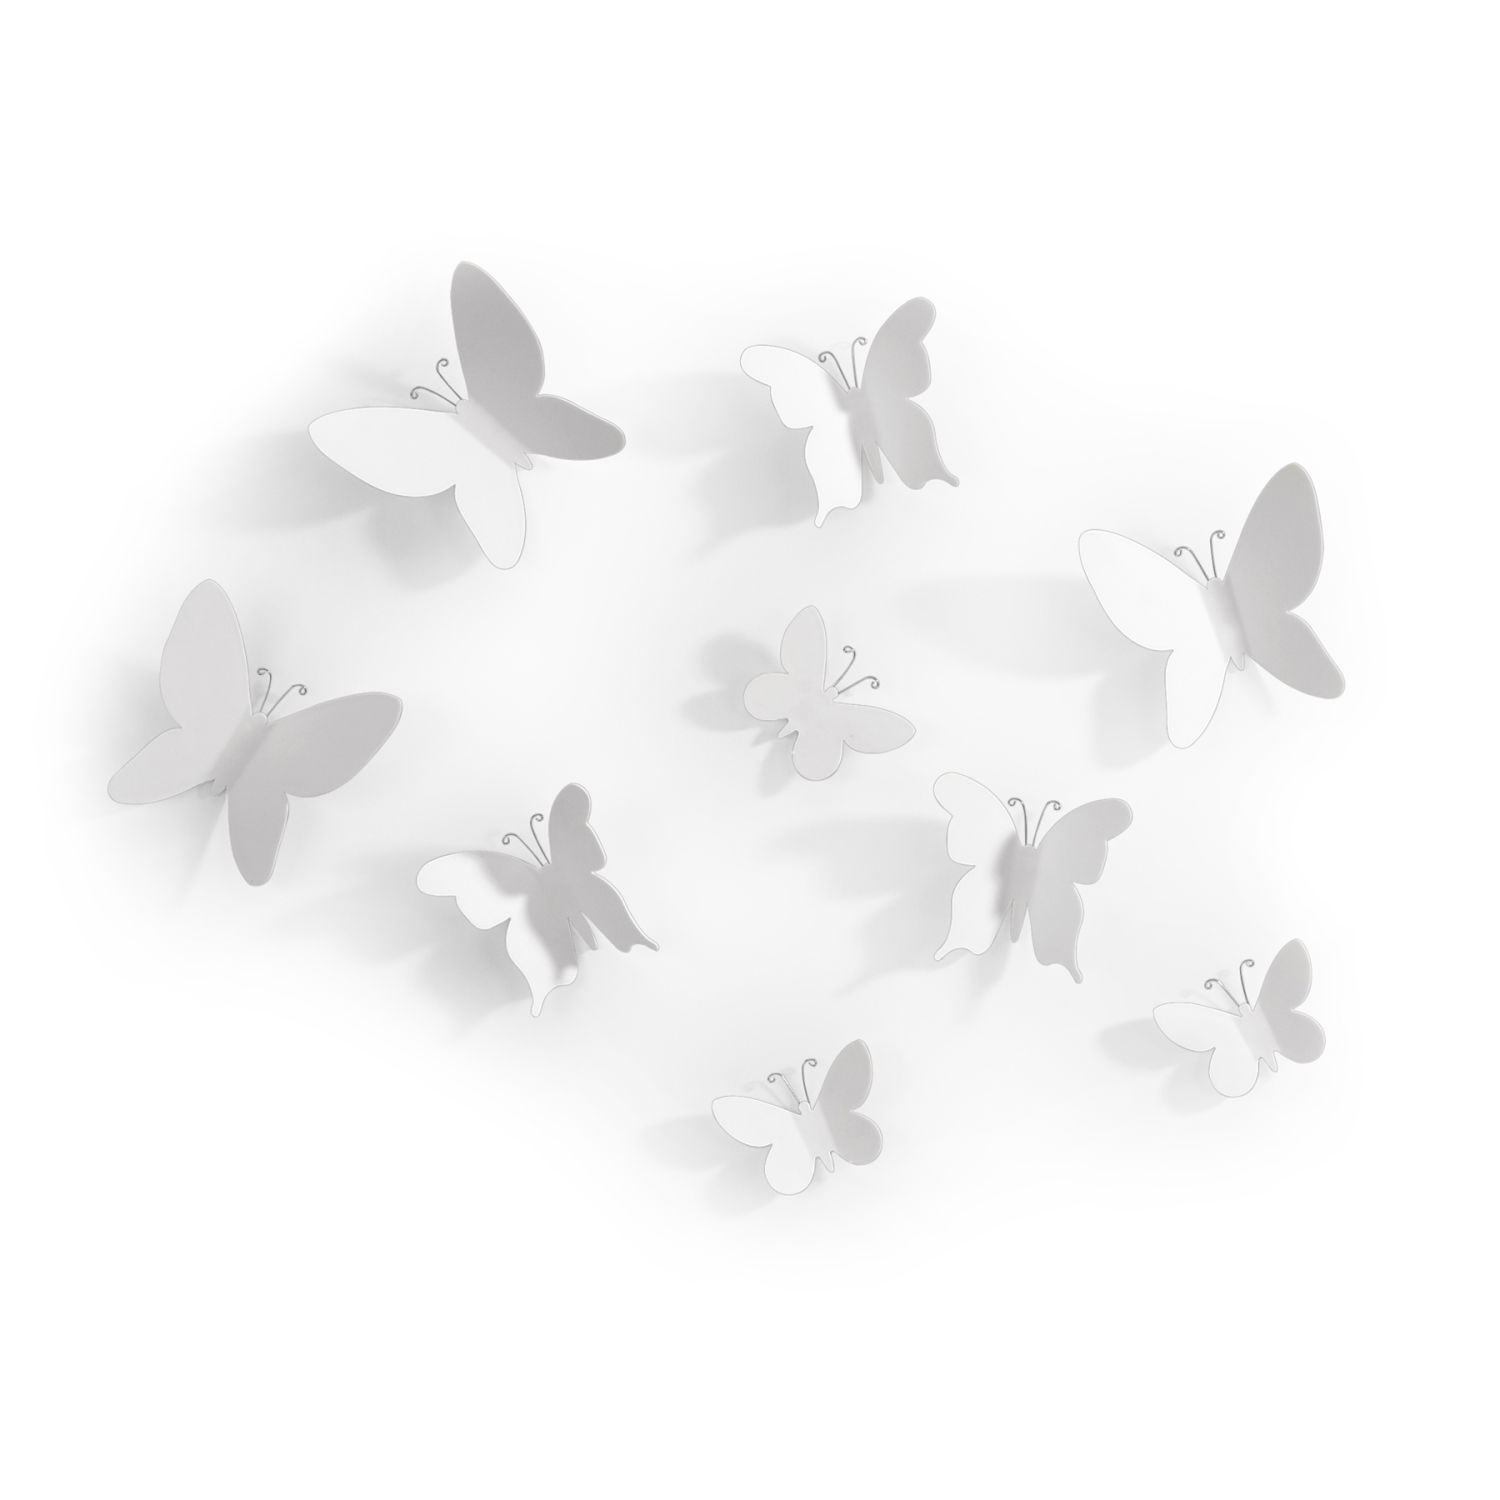 Umbra Pluff Wall Decor Set Of 9 : Umbra mariposa set of white